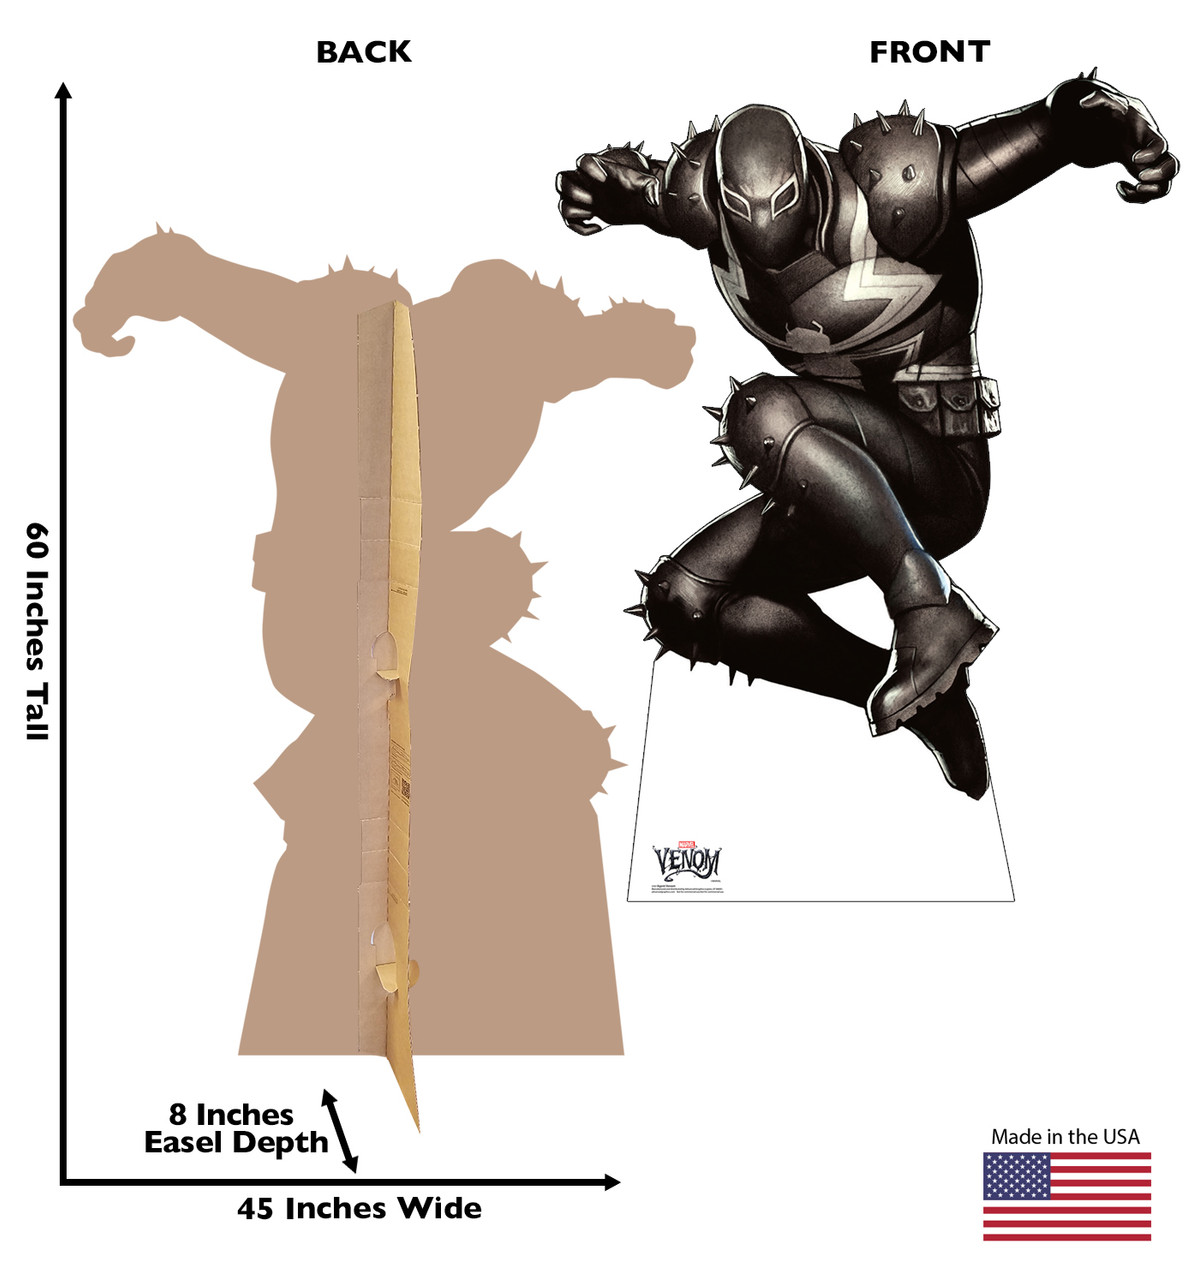 Life-size cardboard standee of Agent Venom from Marvel Classics with back and front dimensions.